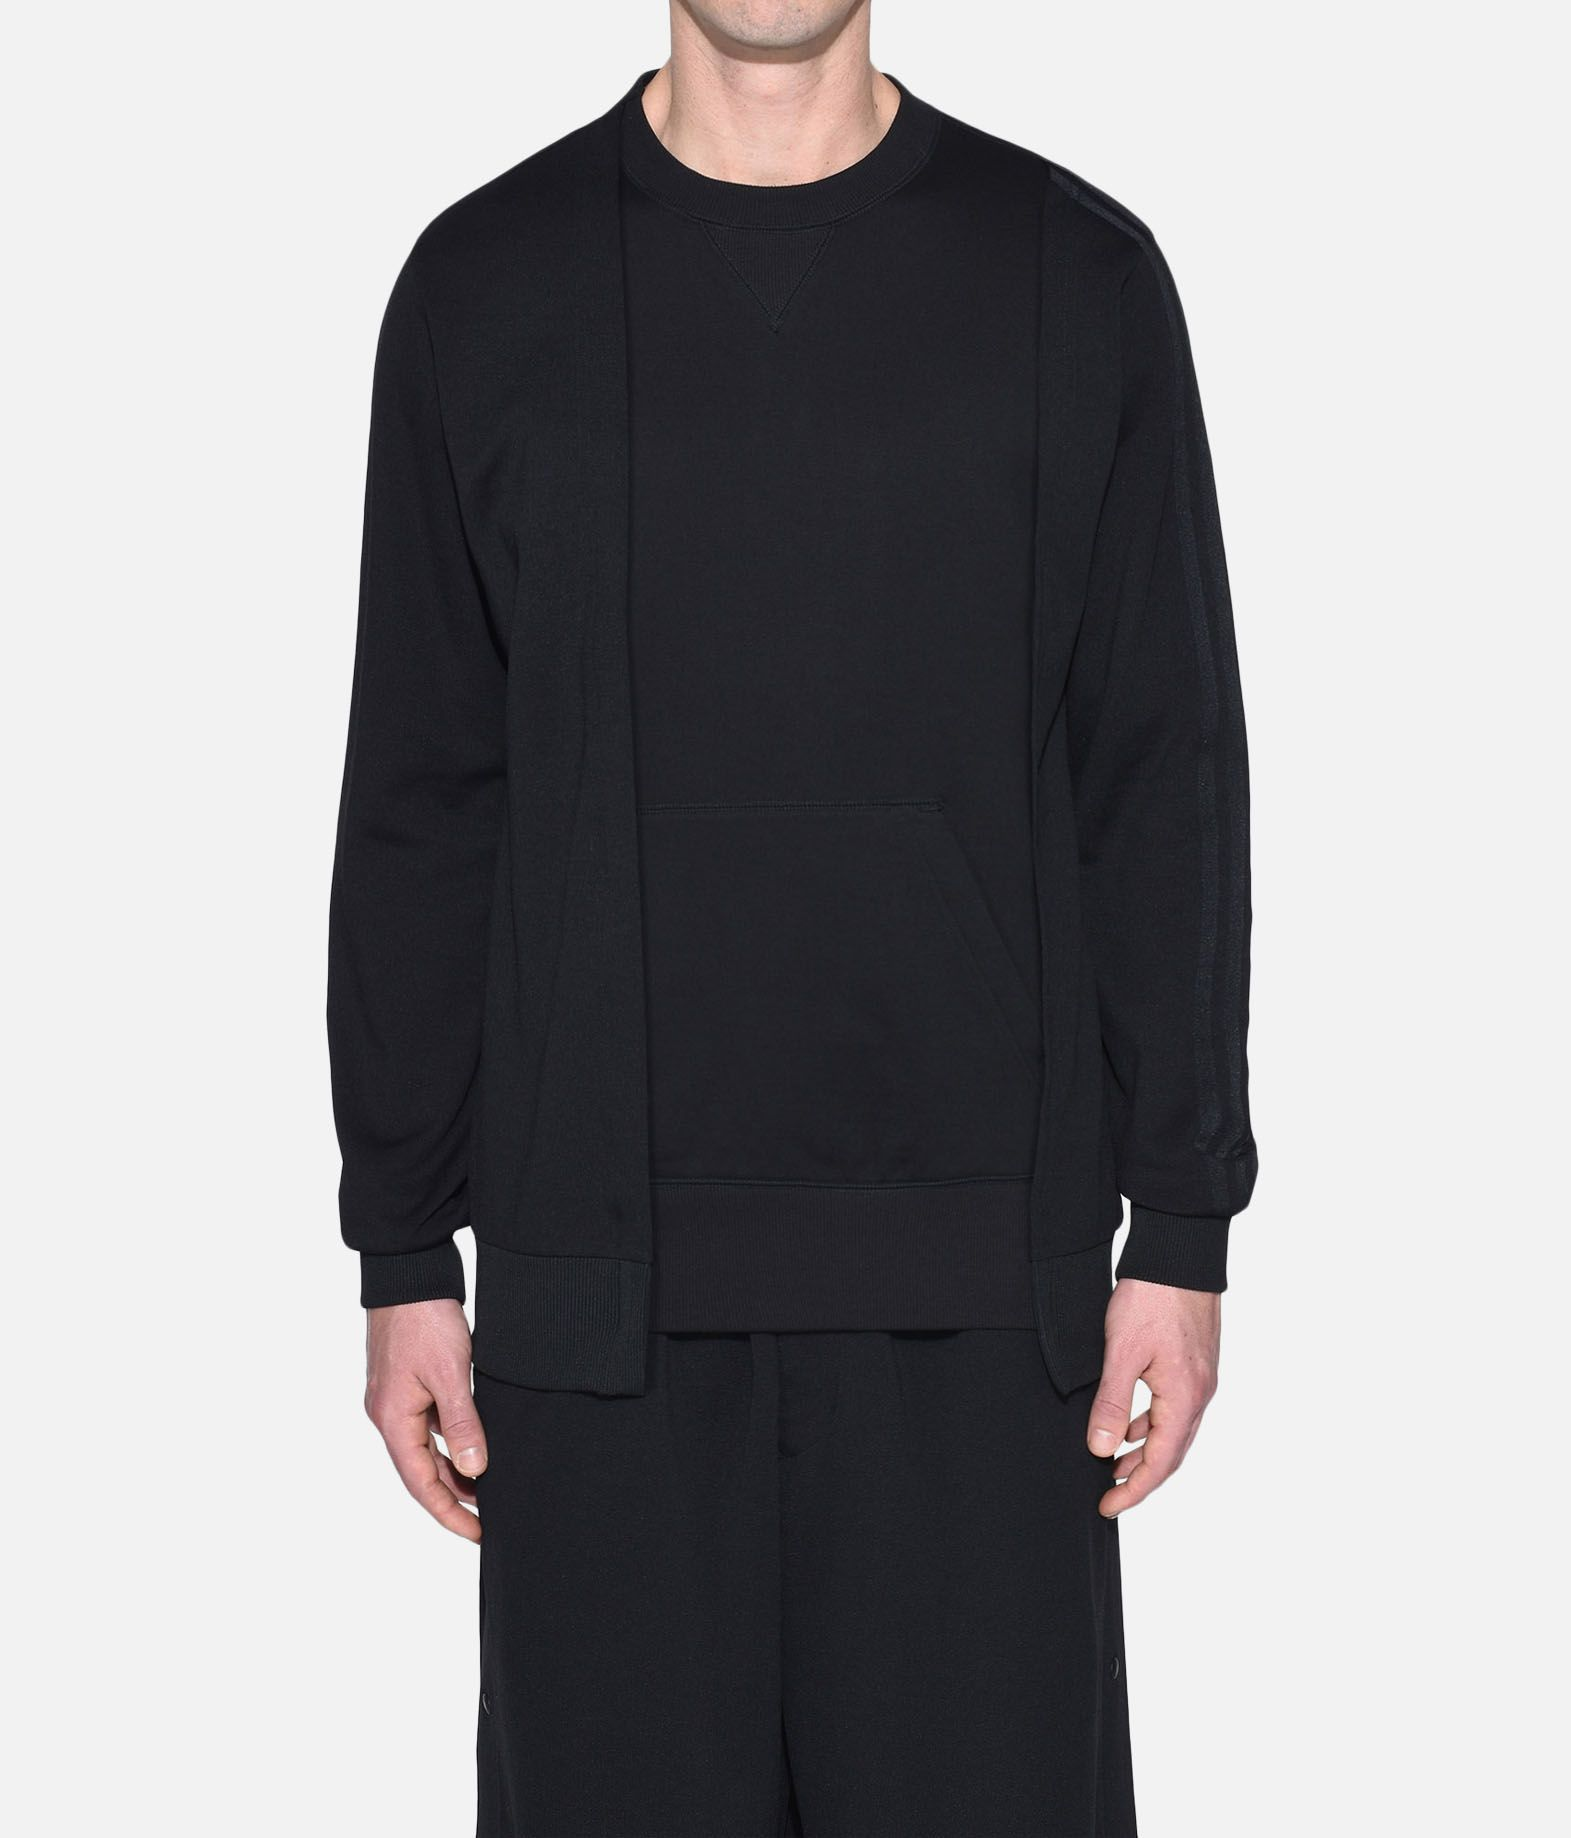 Y-3 Y-3 Patchwork Sweater Sweatshirt Man r